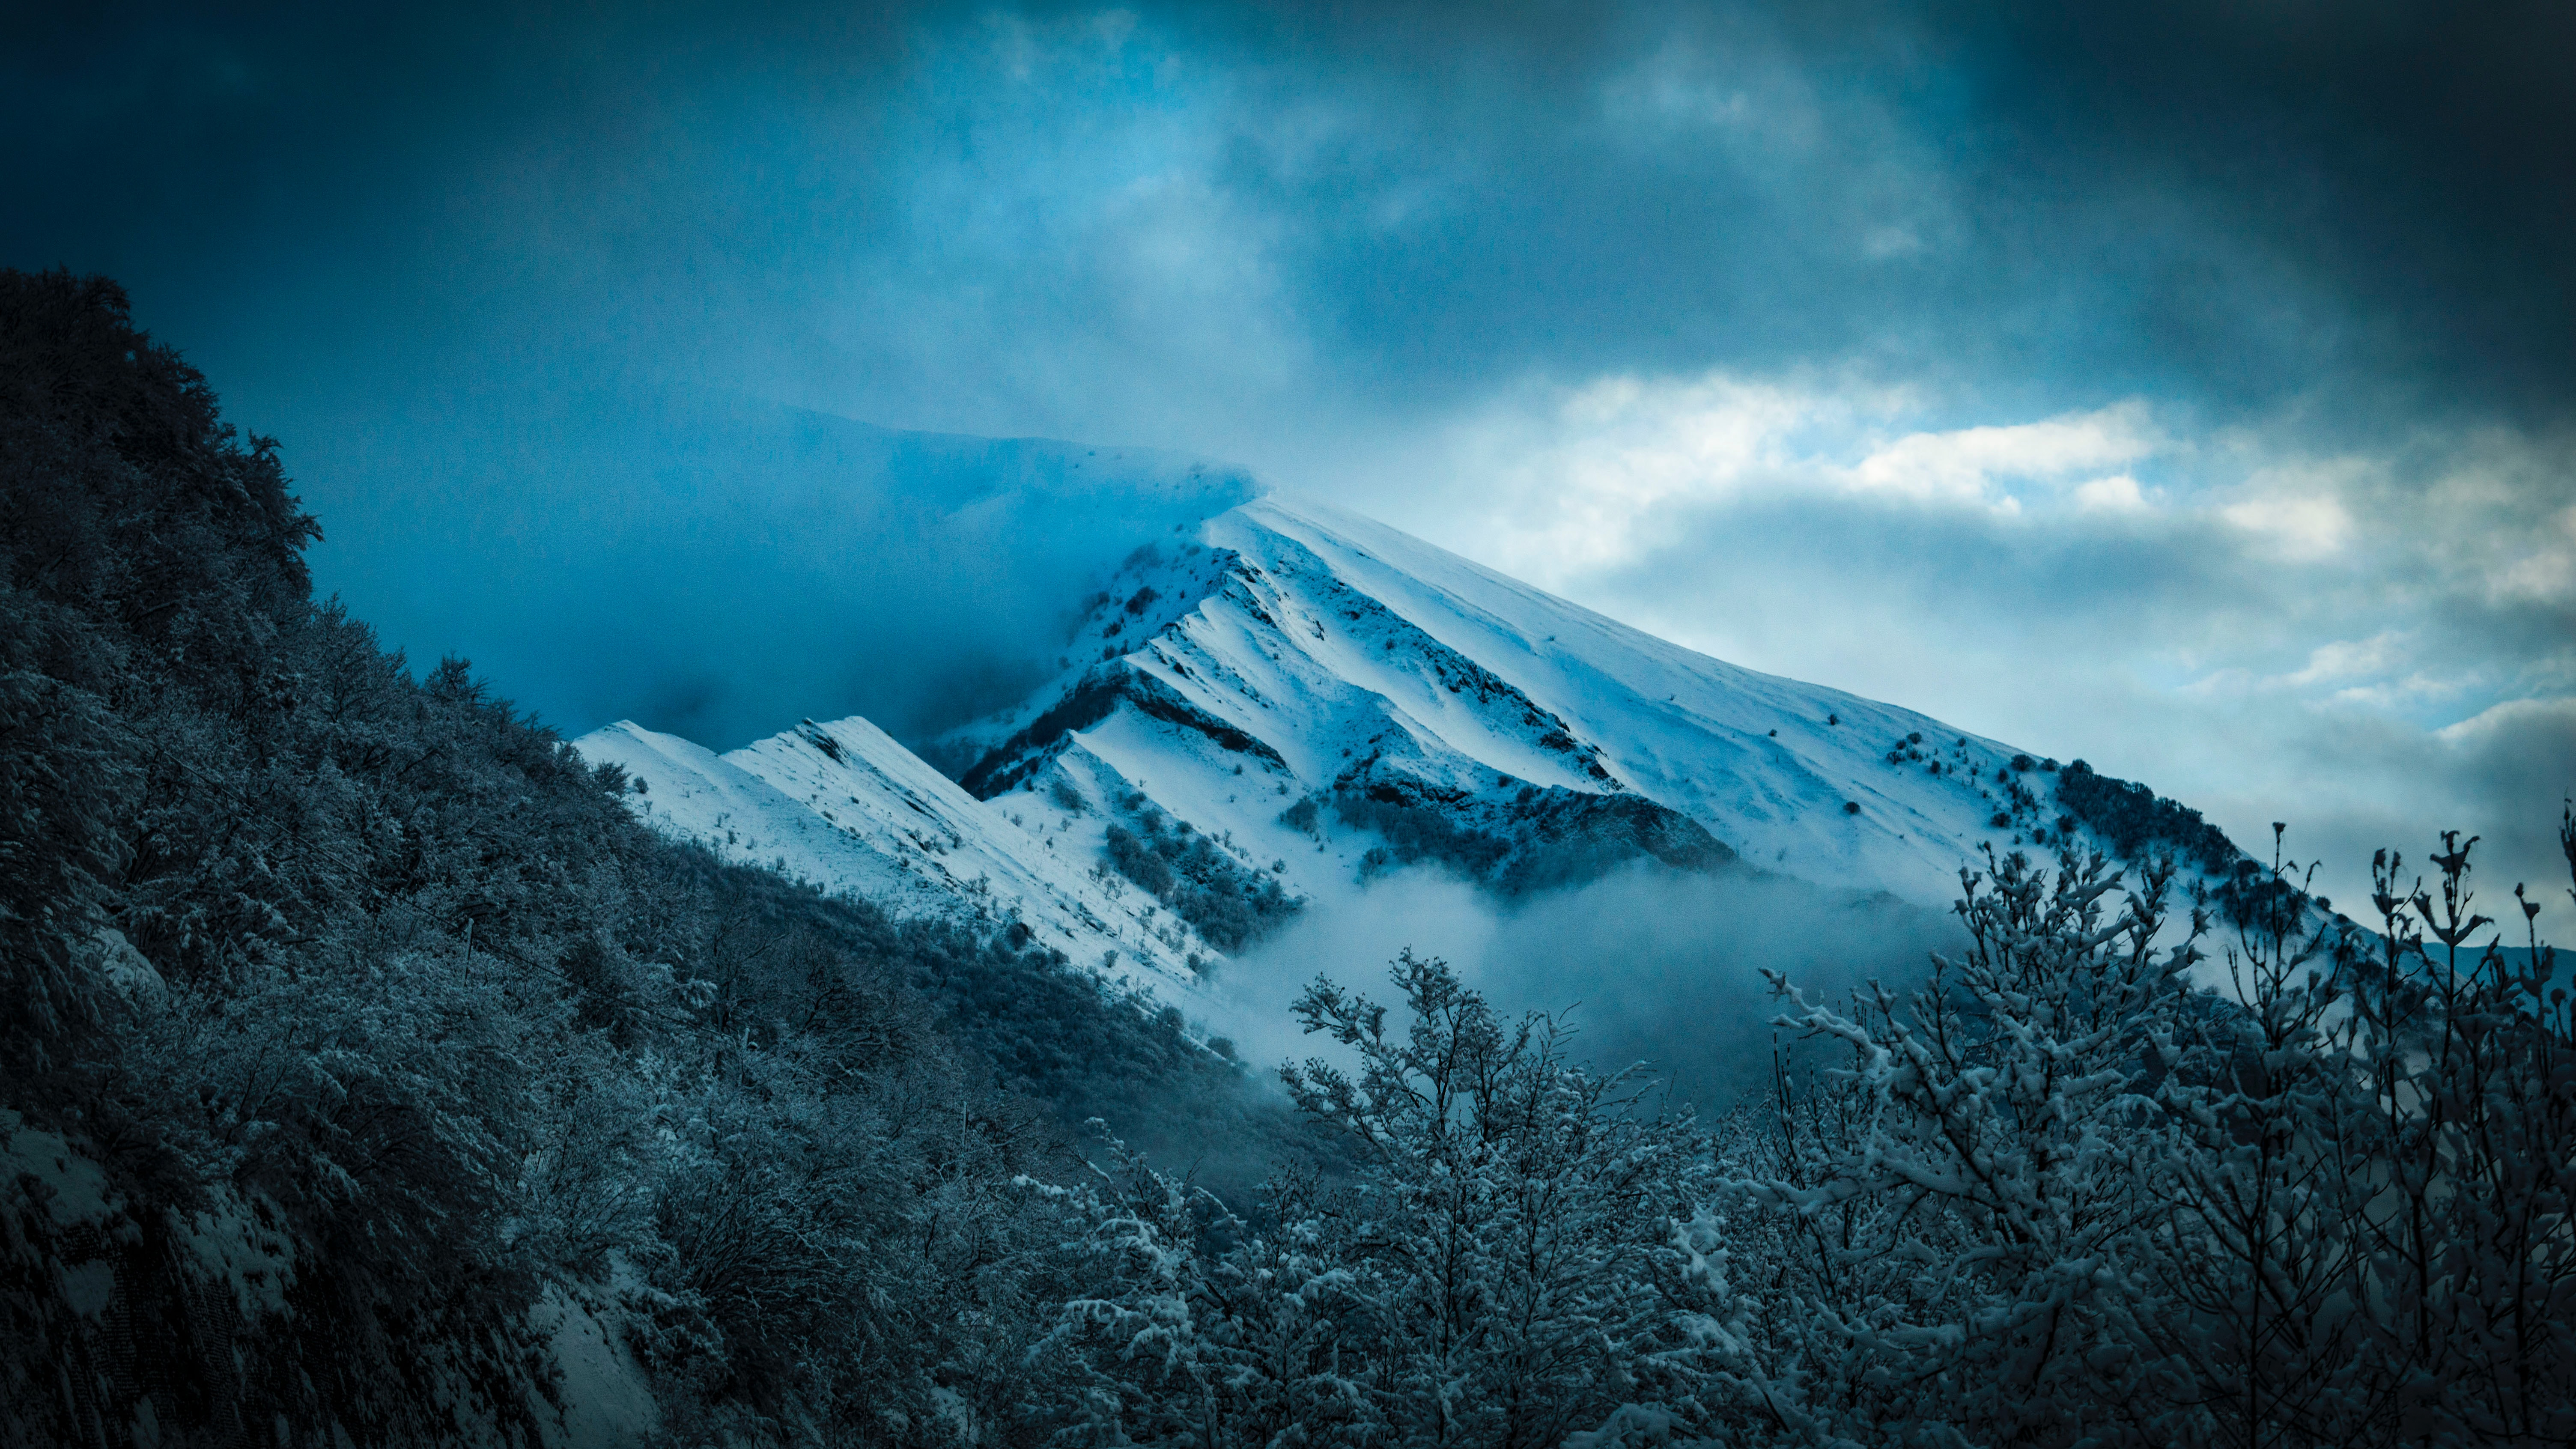 Scenic View of Snowy Mountain, Clouds, Mountain, Winter, Weather, HQ Photo